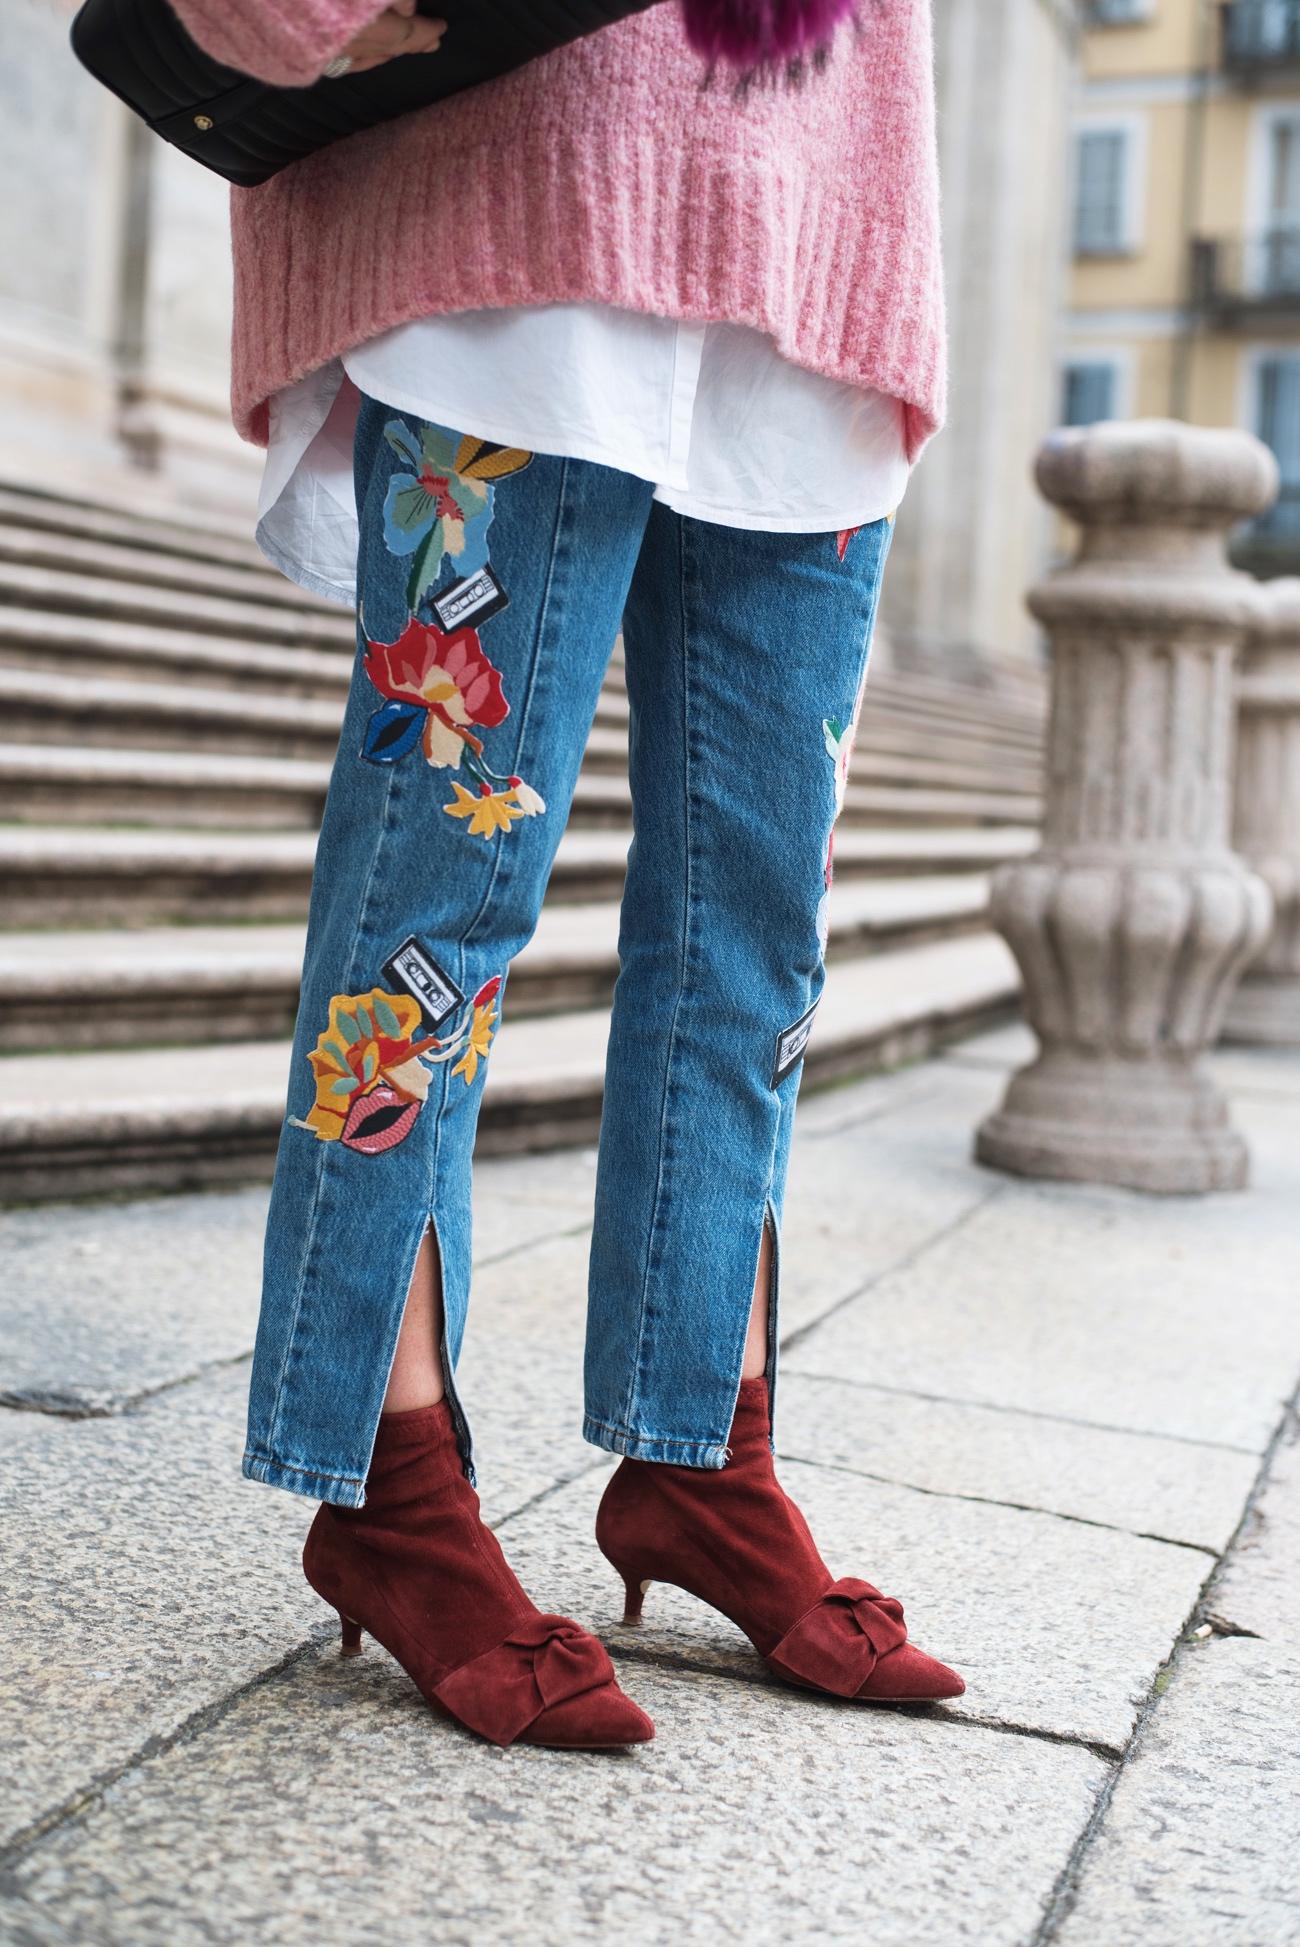 jeans-mit-patches-flicken-denim-with-patches-stickers-zara-streetstyle-blogger-fashiioncarpet